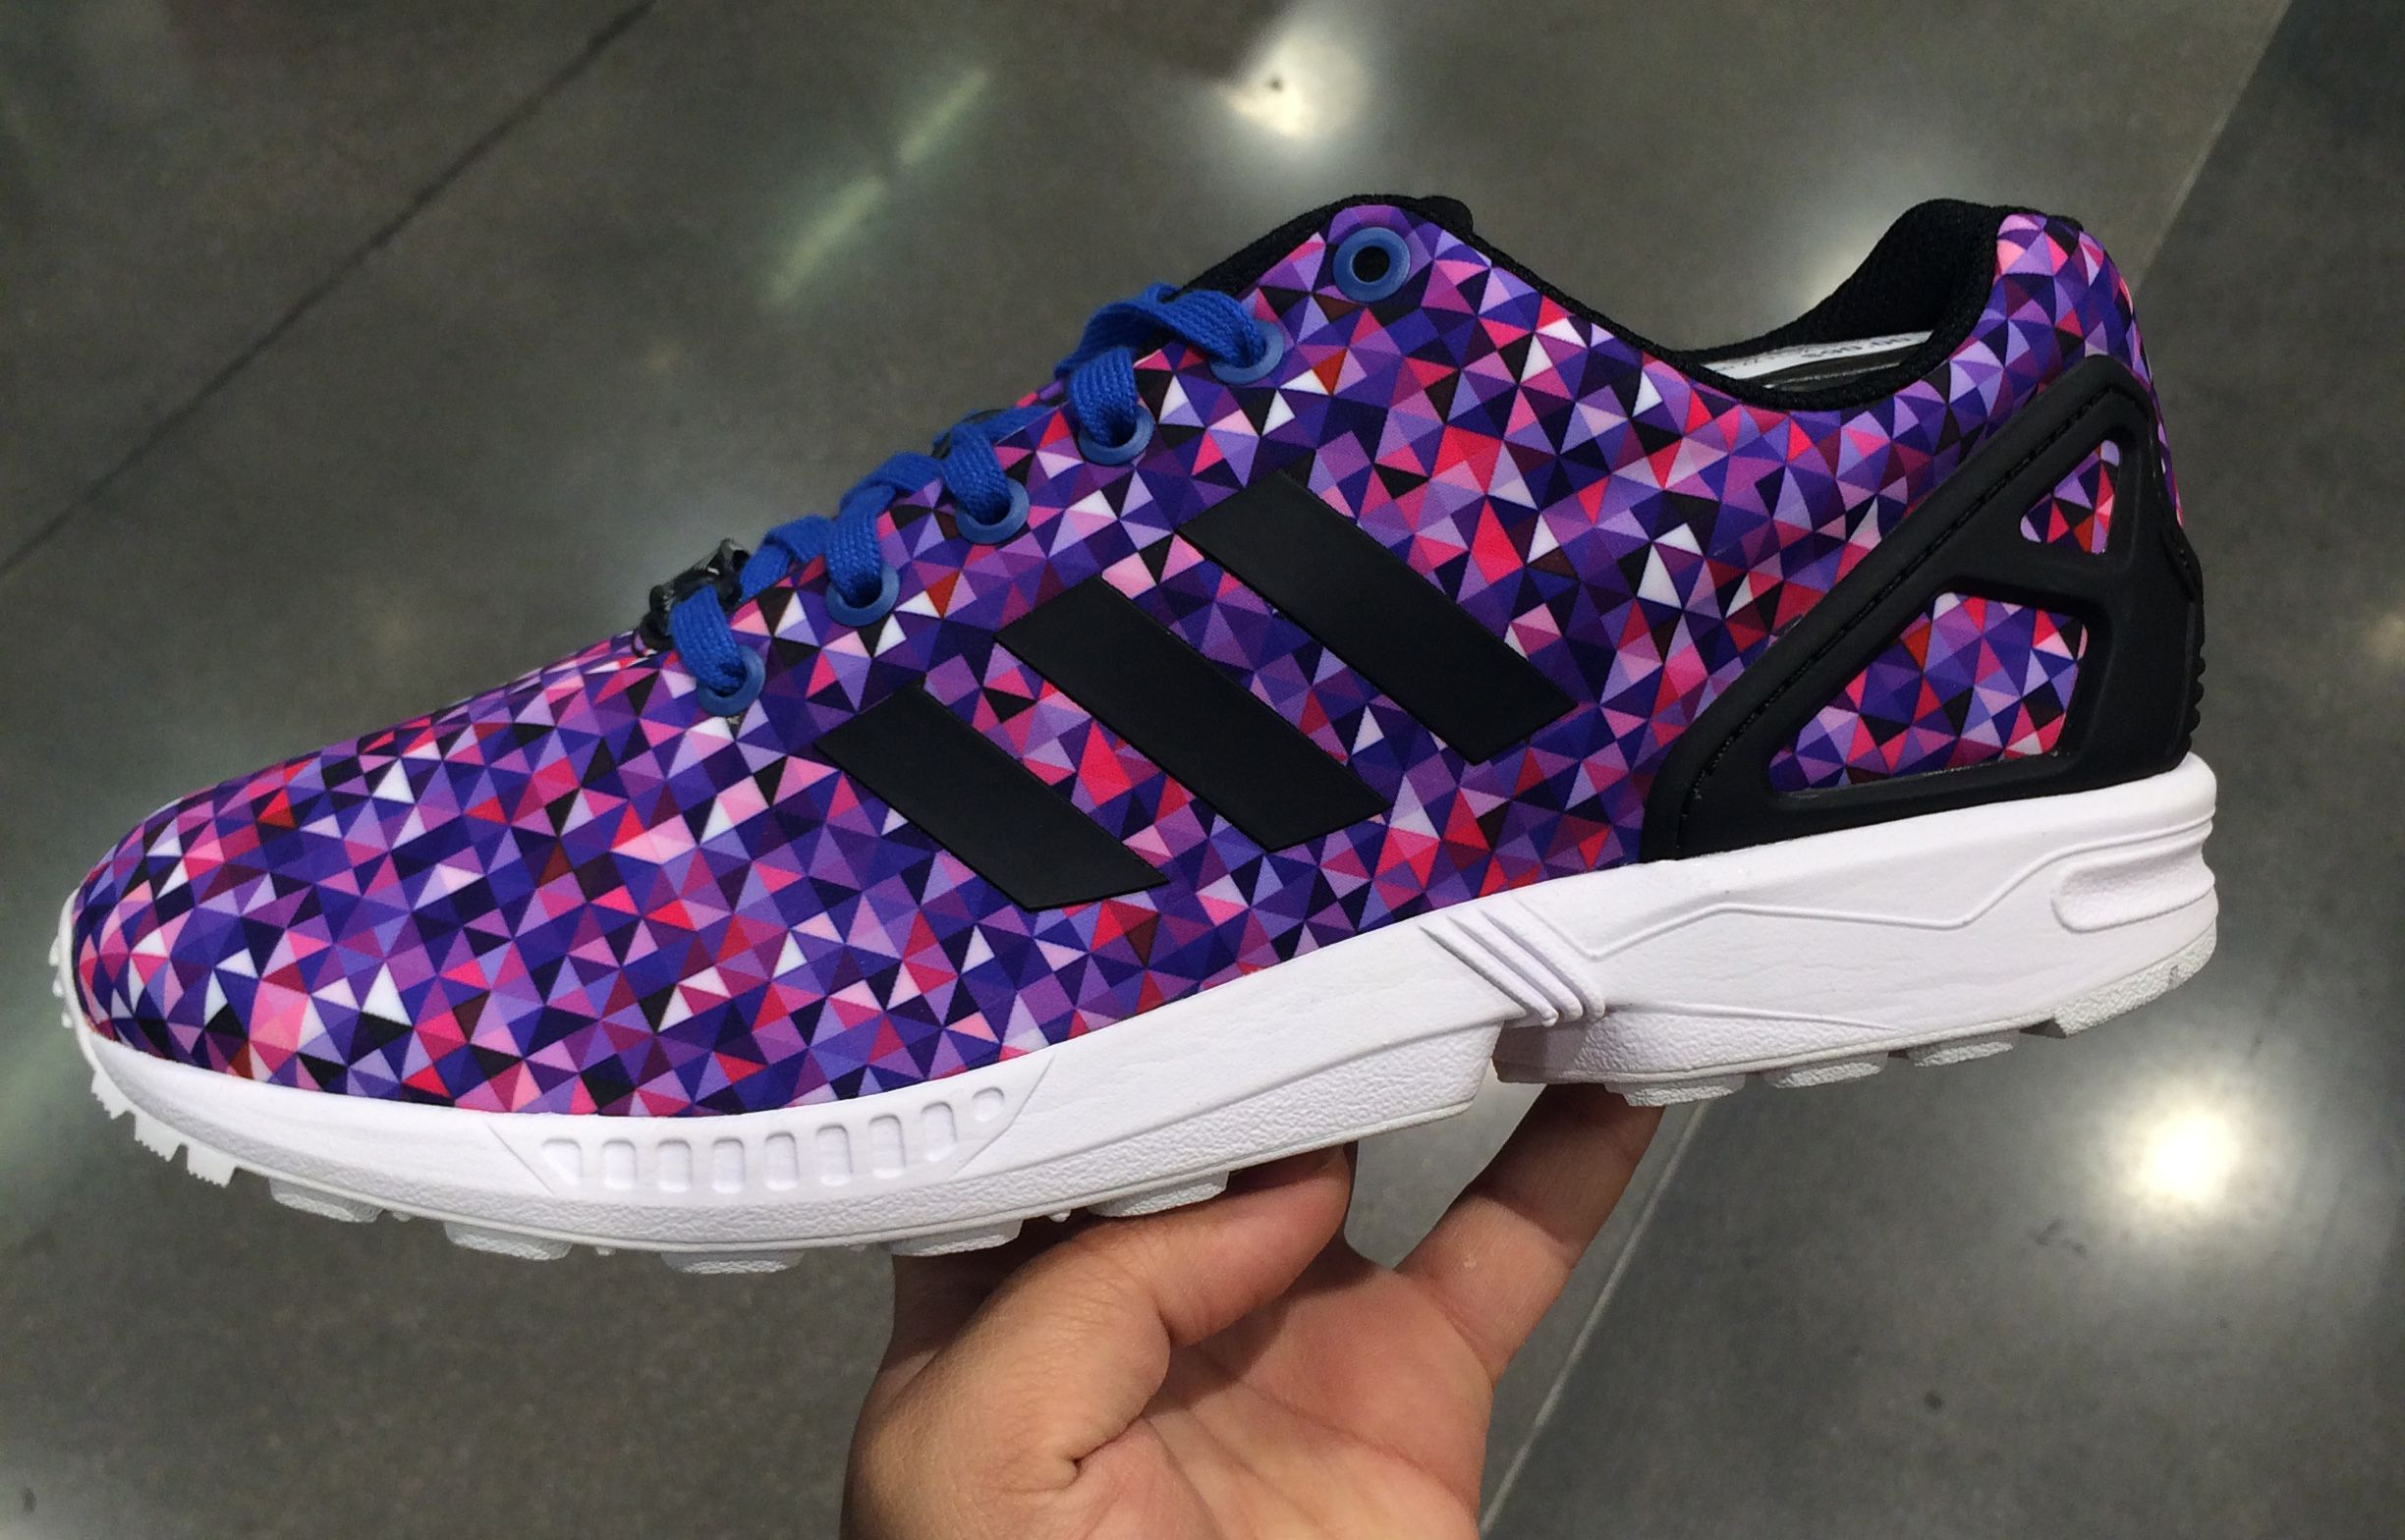 0bc67cdcd1a60 adidas zx flux prism - Google Search